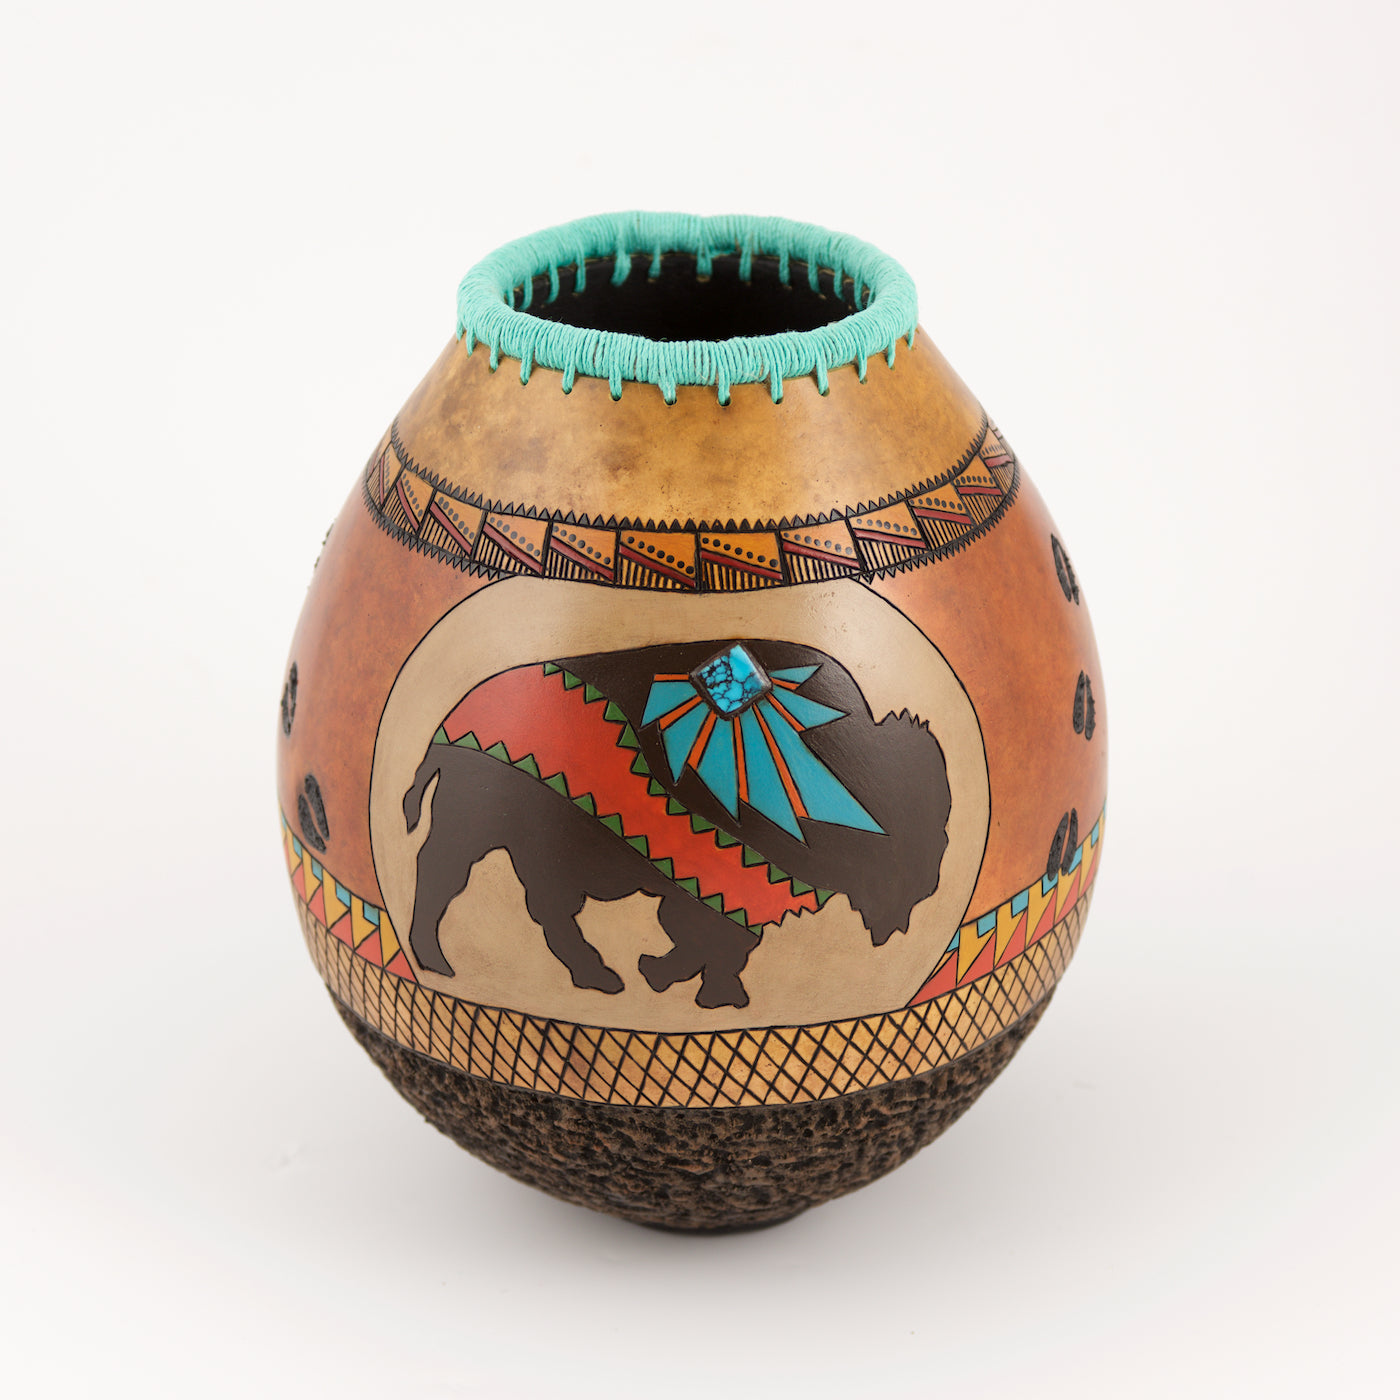 Hand painted, hand crafted gourd art by Andi Wardlaw